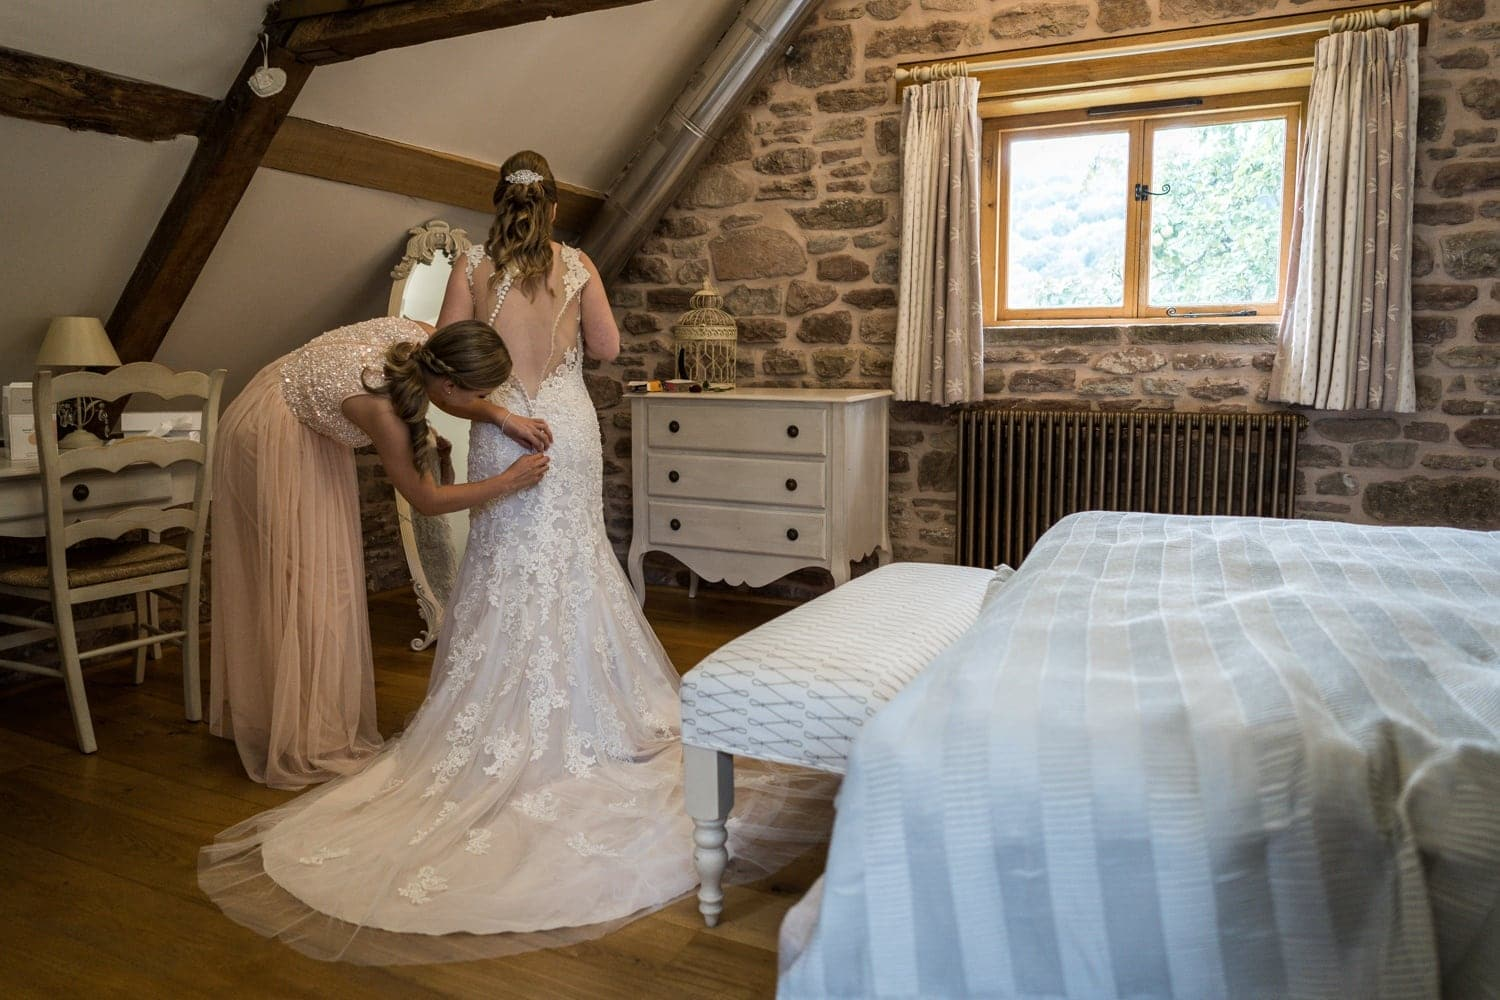 Bride puts dress on at Herefordshire wedding venue Flanesford Priory